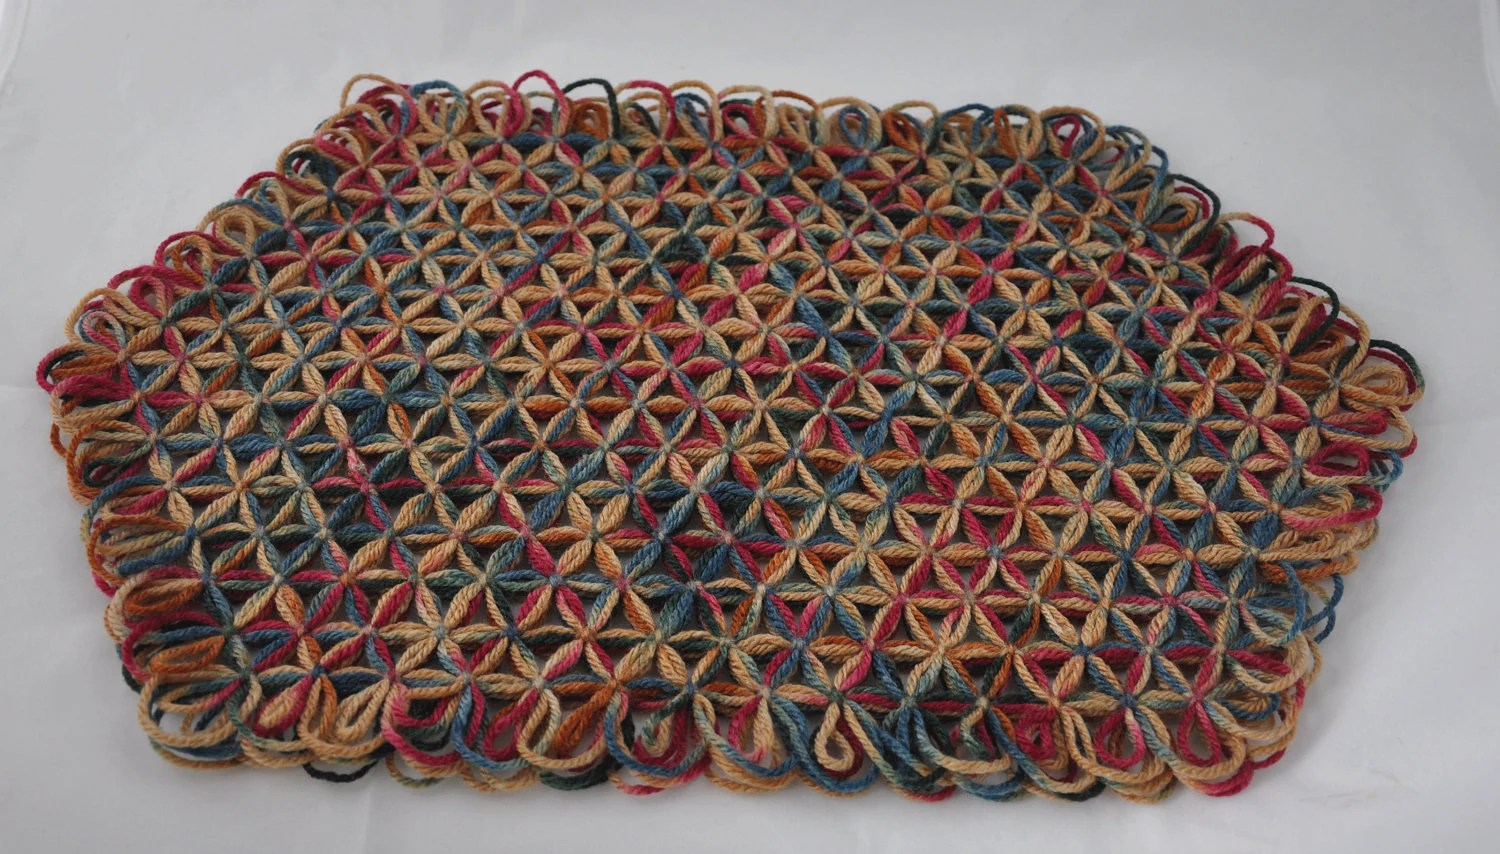 Large Trivet in 3 Layers of Bright Painted Desert Multicolored Yarn  - One Of A Kind (OOAK) Bright Fall Colors LAST ONE